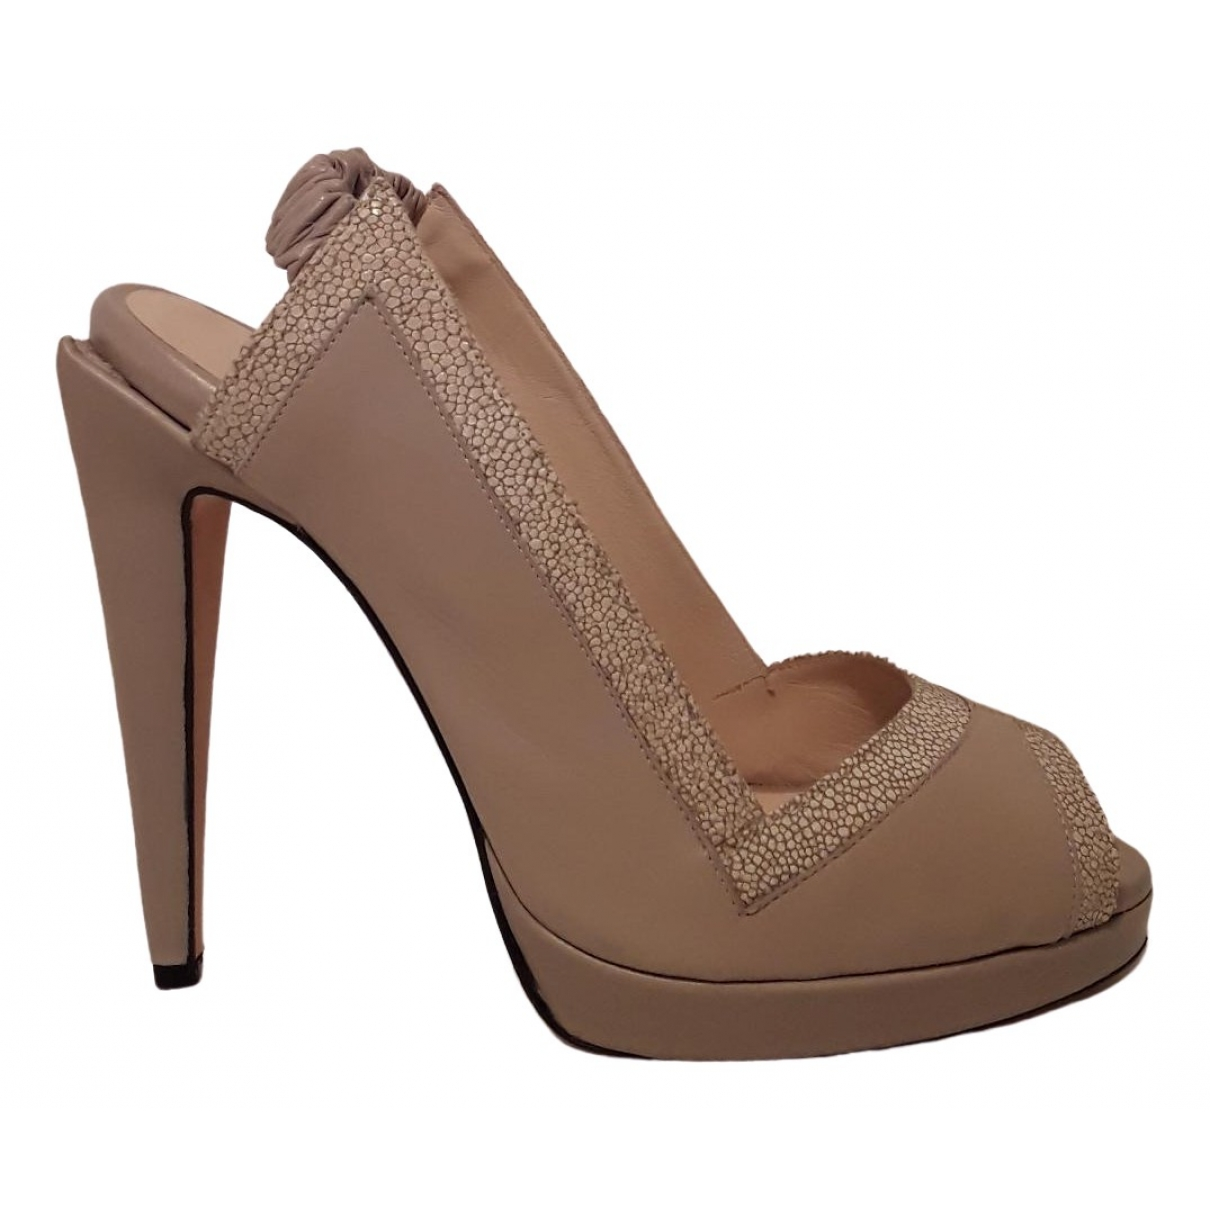 Hôtel Particulier \N Beige Leather Heels for Women 39 EU